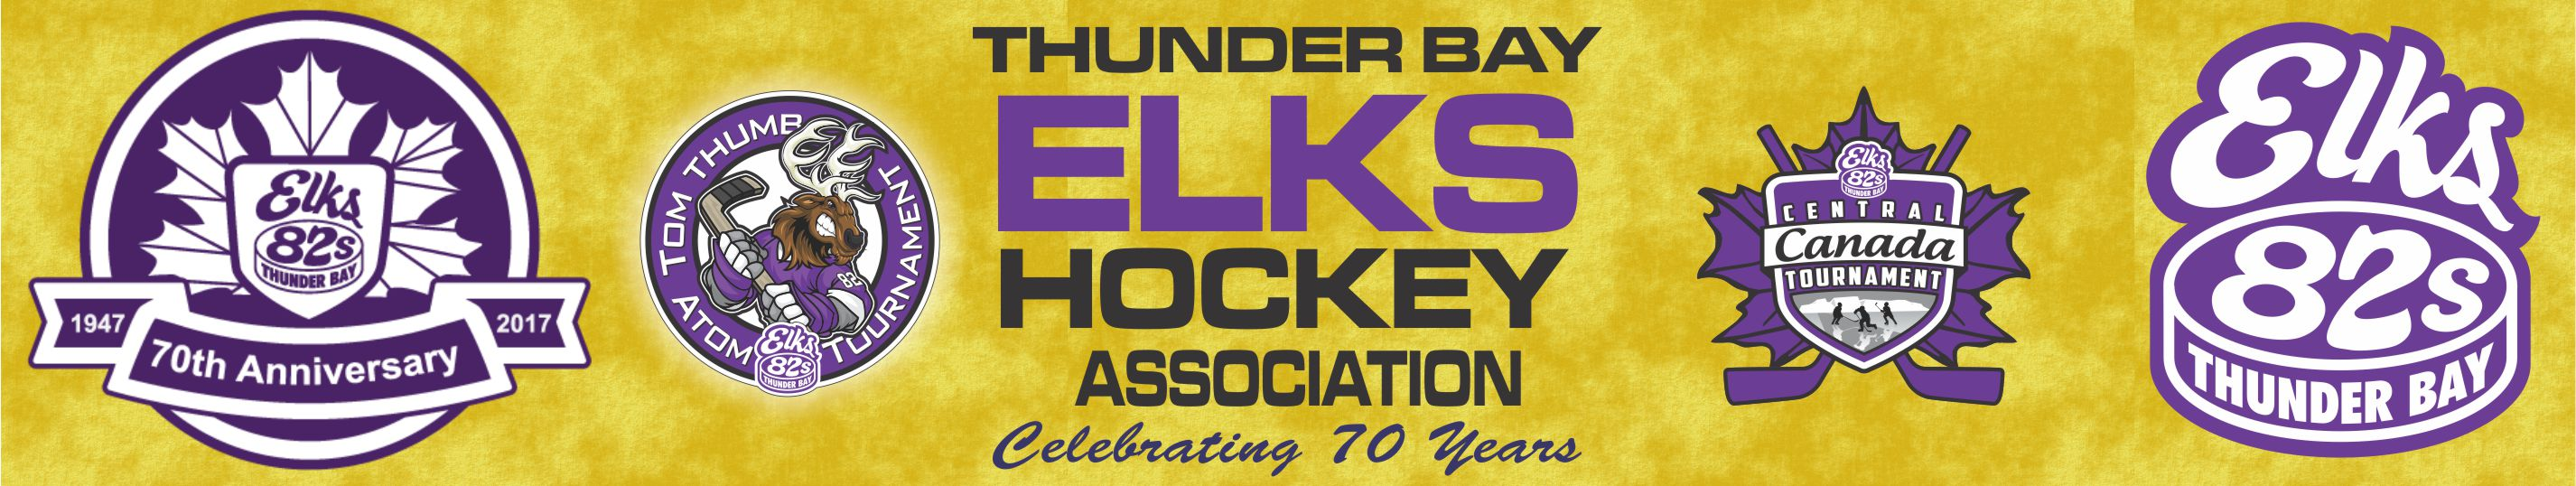 Thunder Bay Elks Hockey Association